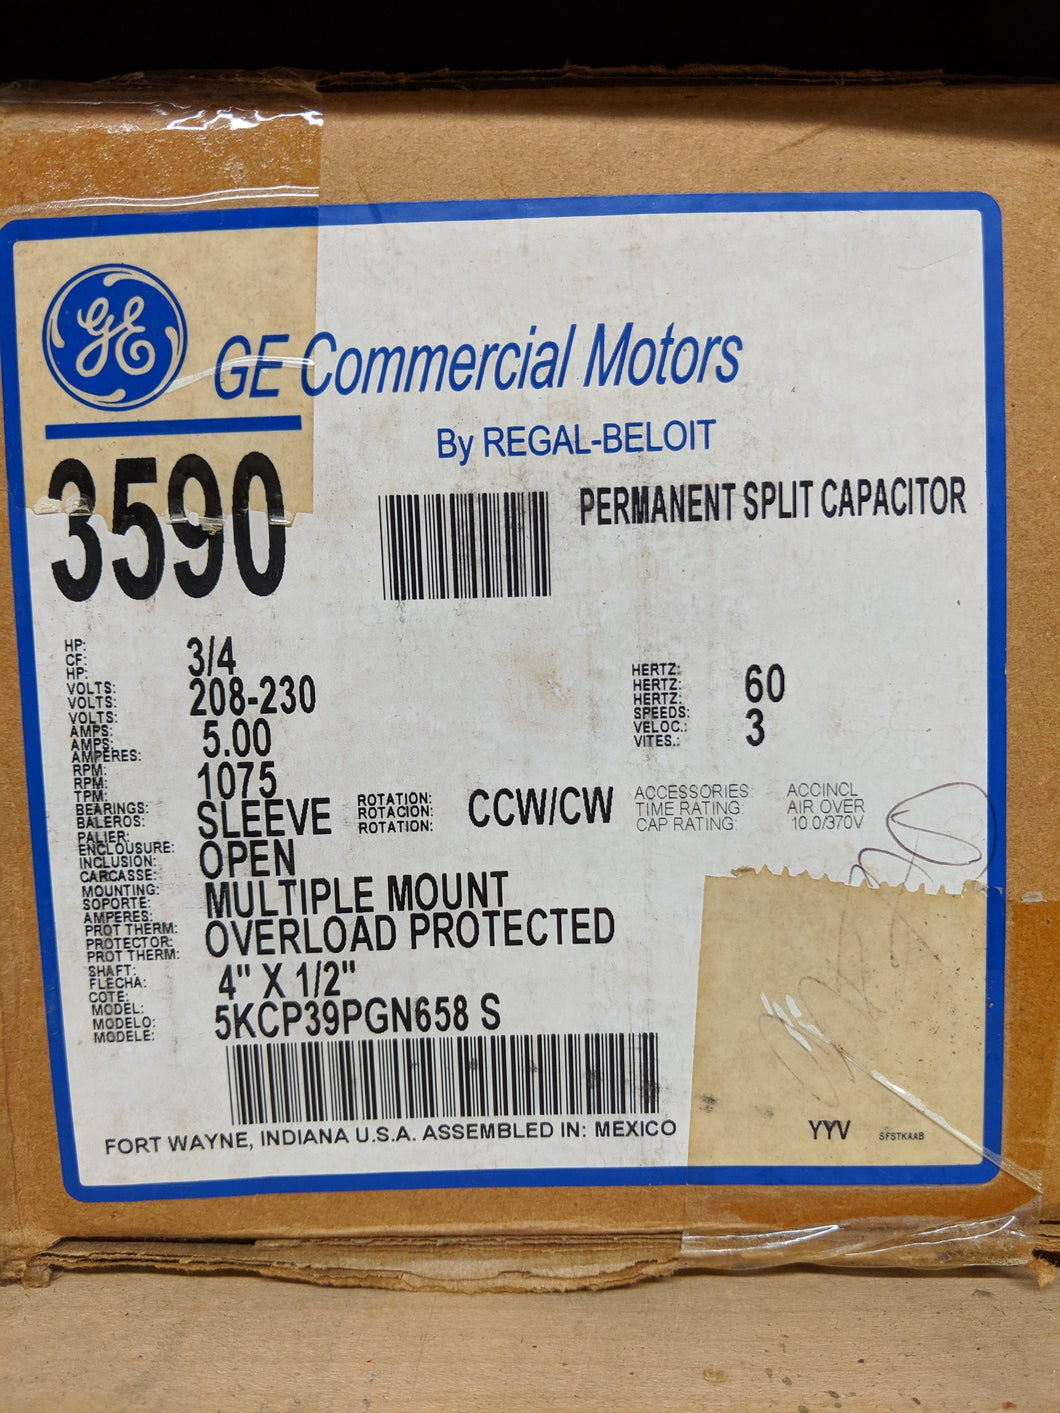 GE 3590, 3/4 HP, 208-230 Volts, 5KCP39PGN658S